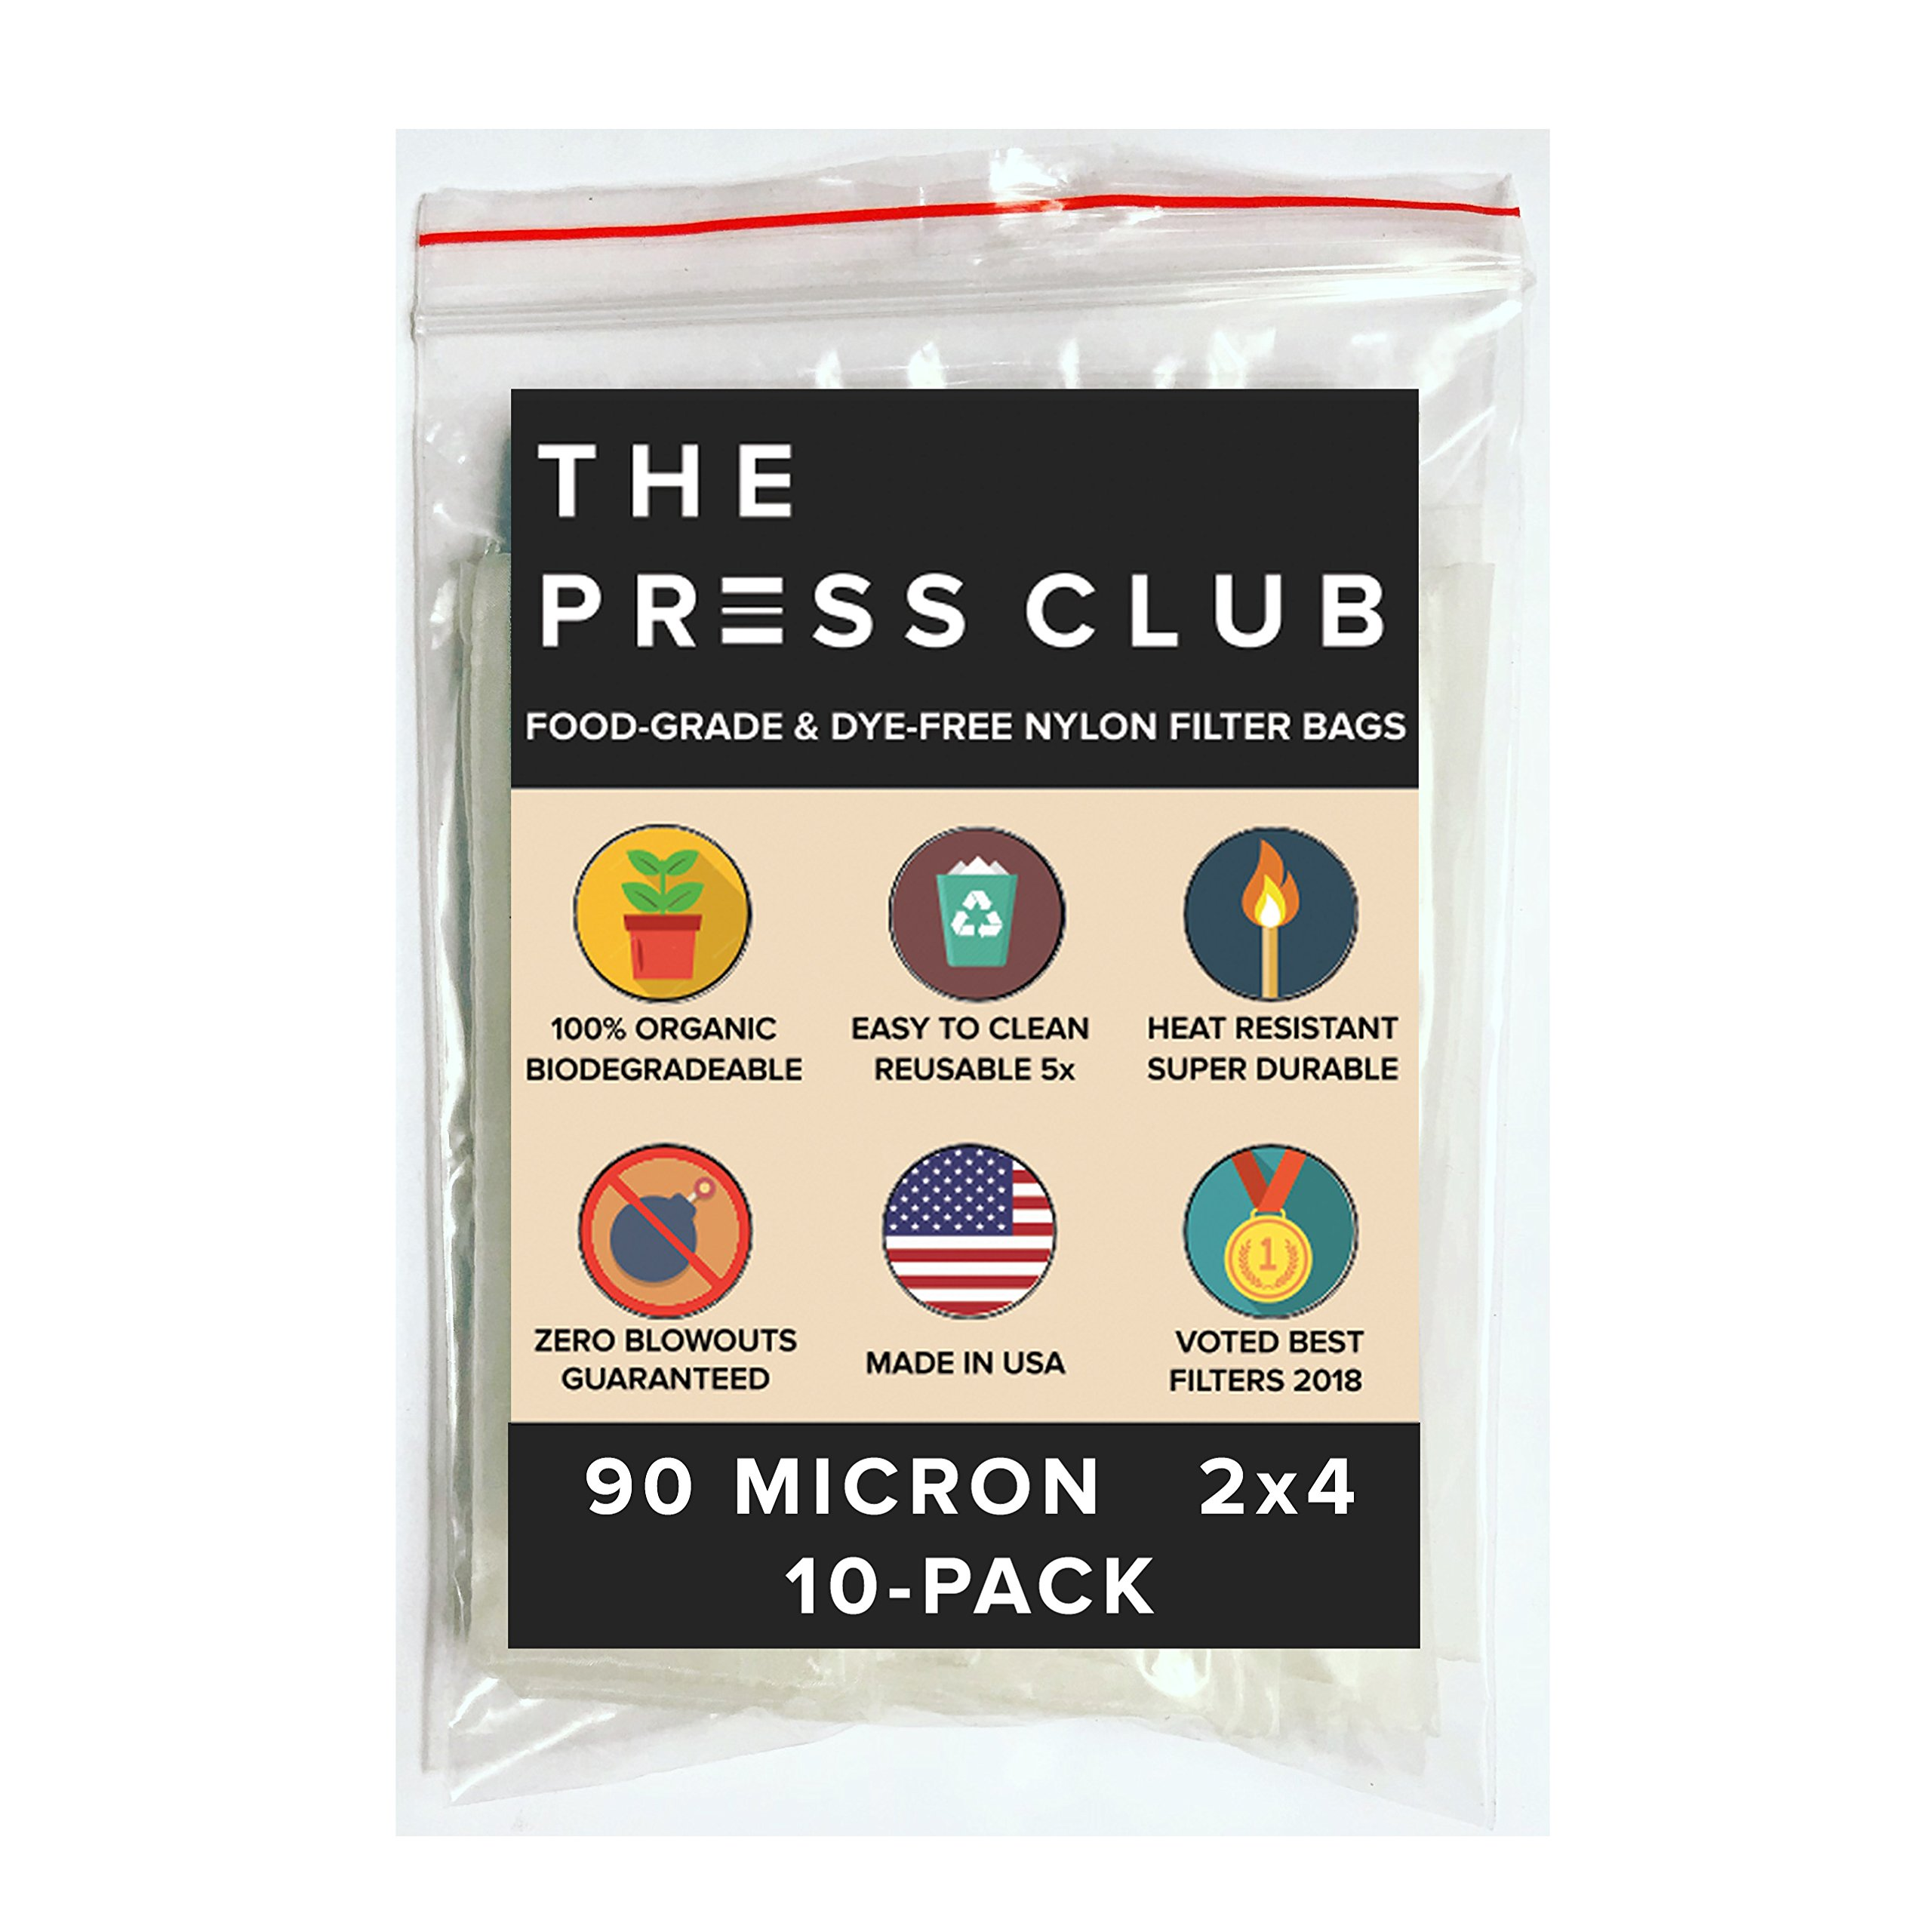 90 Micron | Premium Nylon Rosin Tea Filter Screen Press Bags | 2'' x 4'' | 10 Pack | Zero Blowout Guarantee | All Micron & Sizes Available by The Press Club